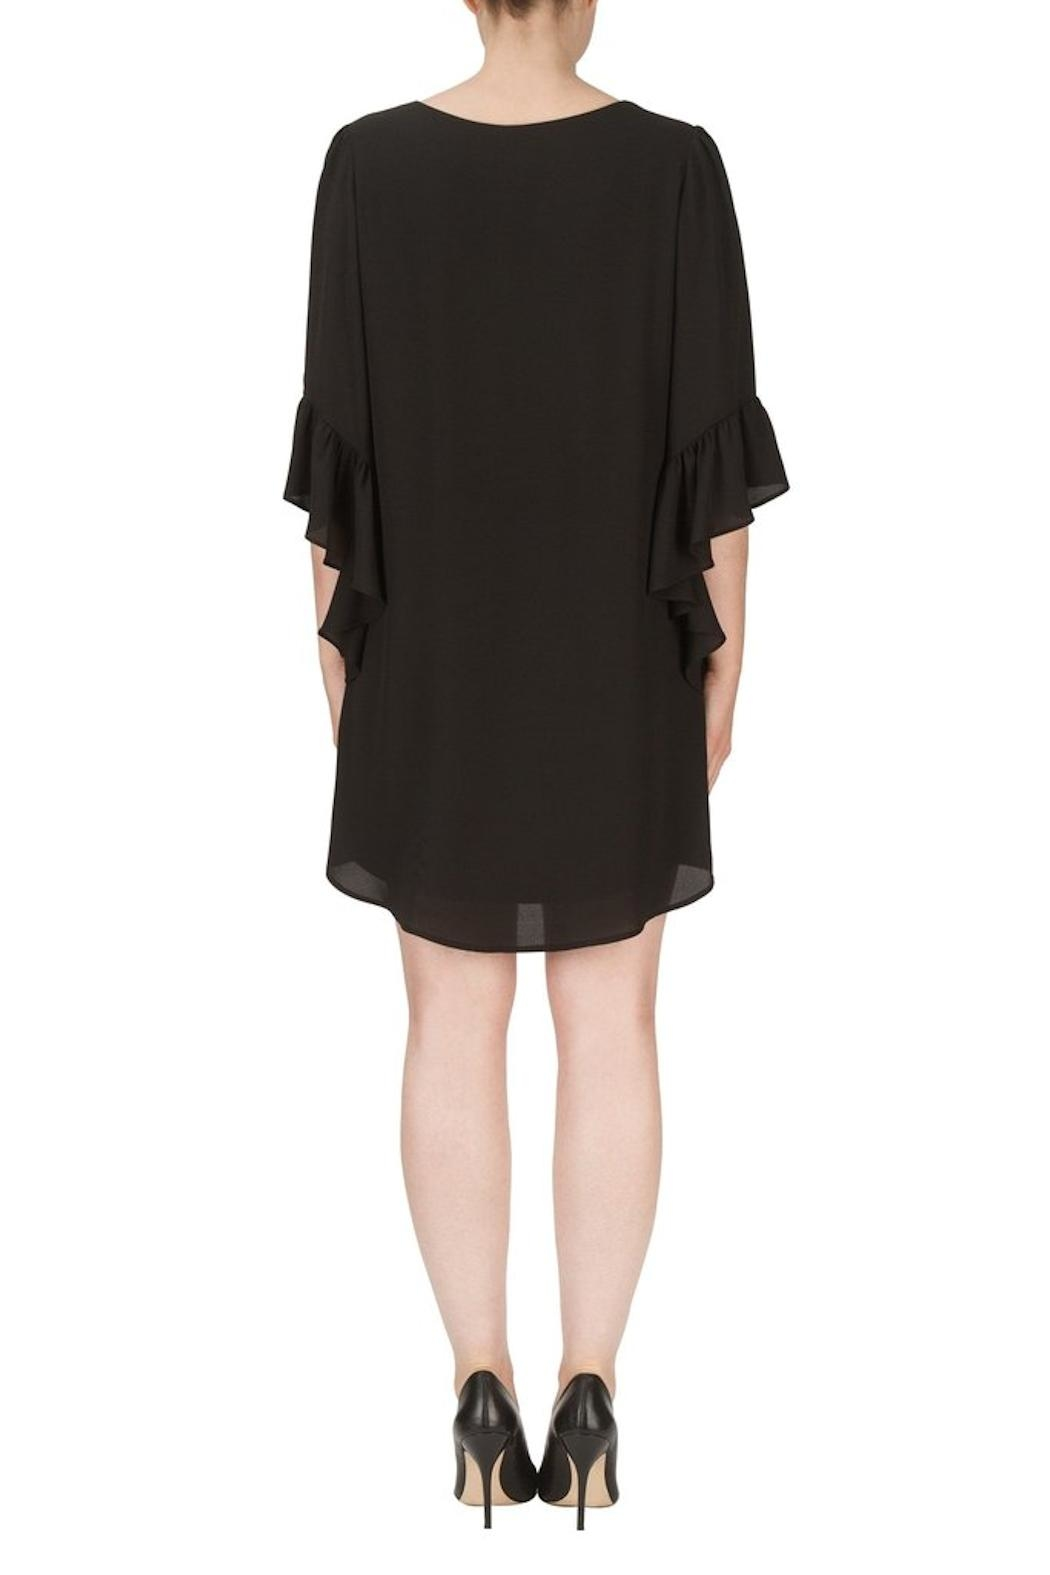 Joseph Ribkoff Black Dress - Front Full Image